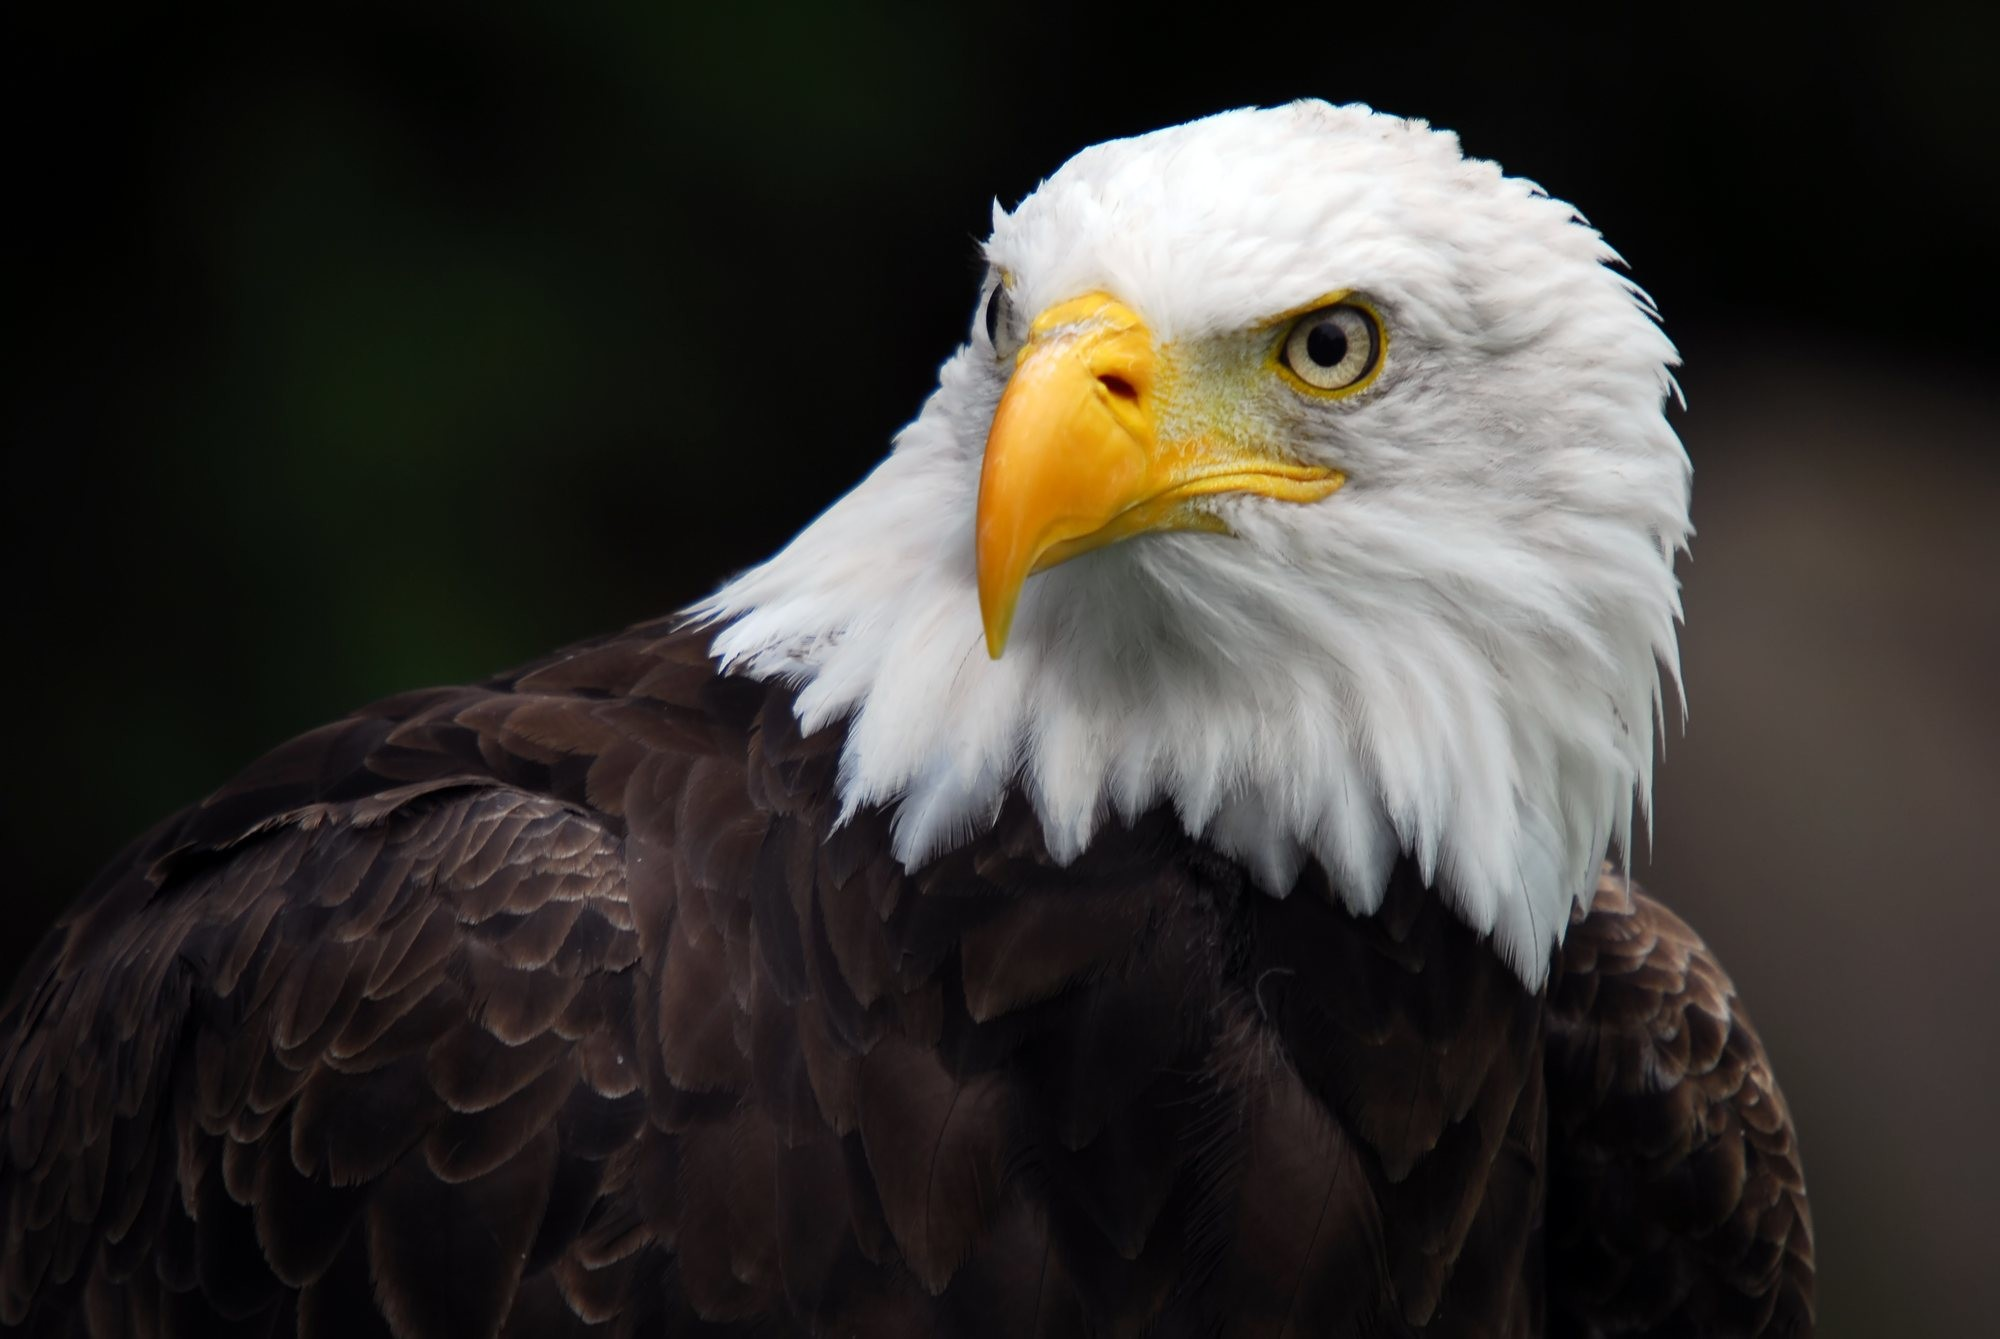 American Flag With Eagle Wallpaper 70 images 2000x1339